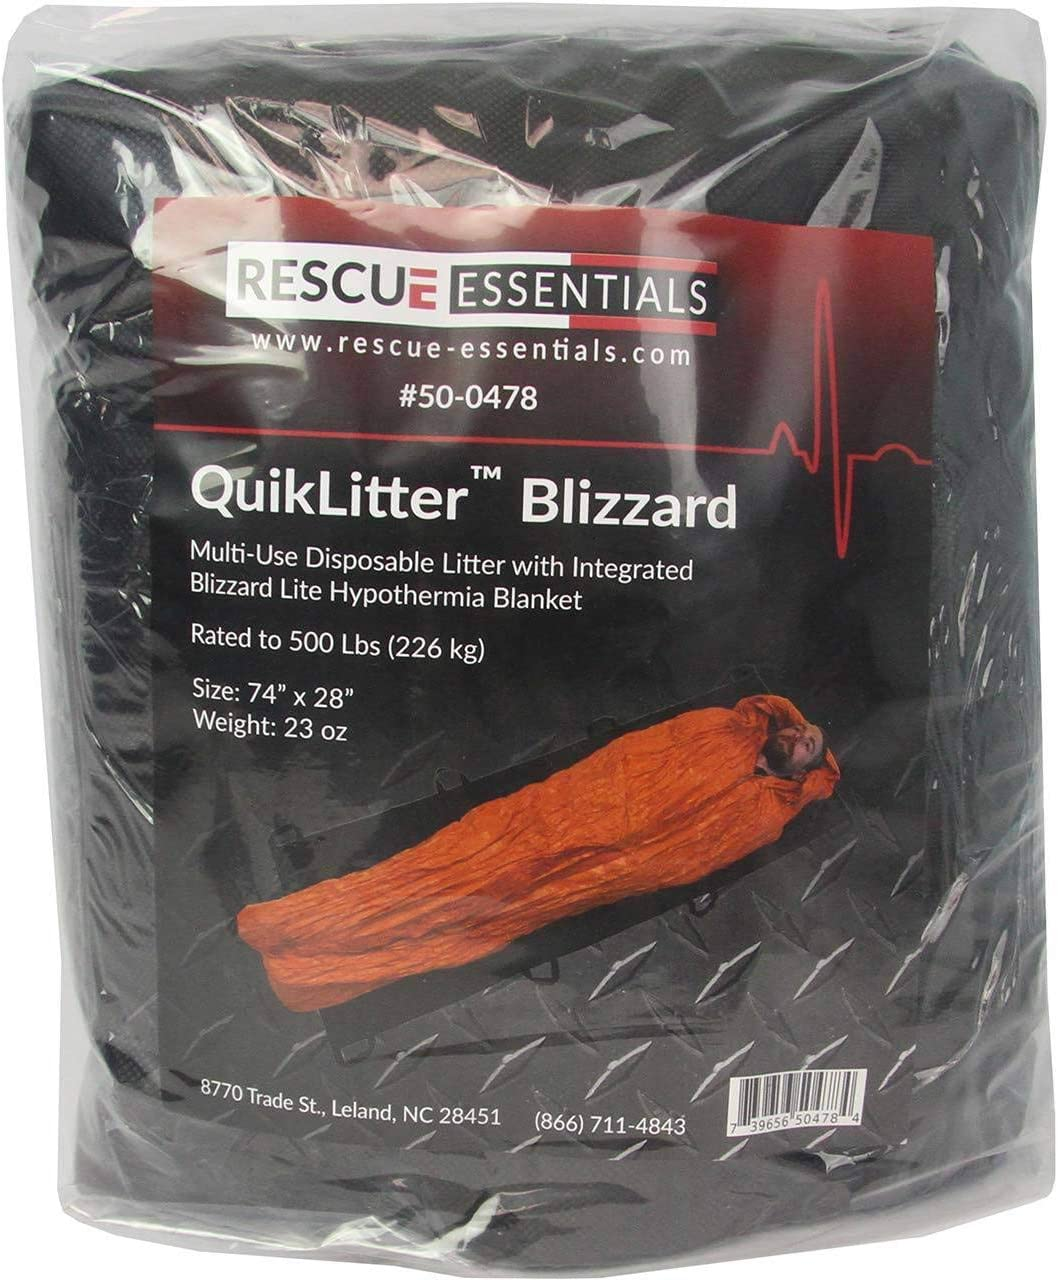 Rescue Essentials Brand QuikLitter Blizzard with 2 Layer Blizzard Blanket for Casualty Evacuation 500 Lb Rated Black